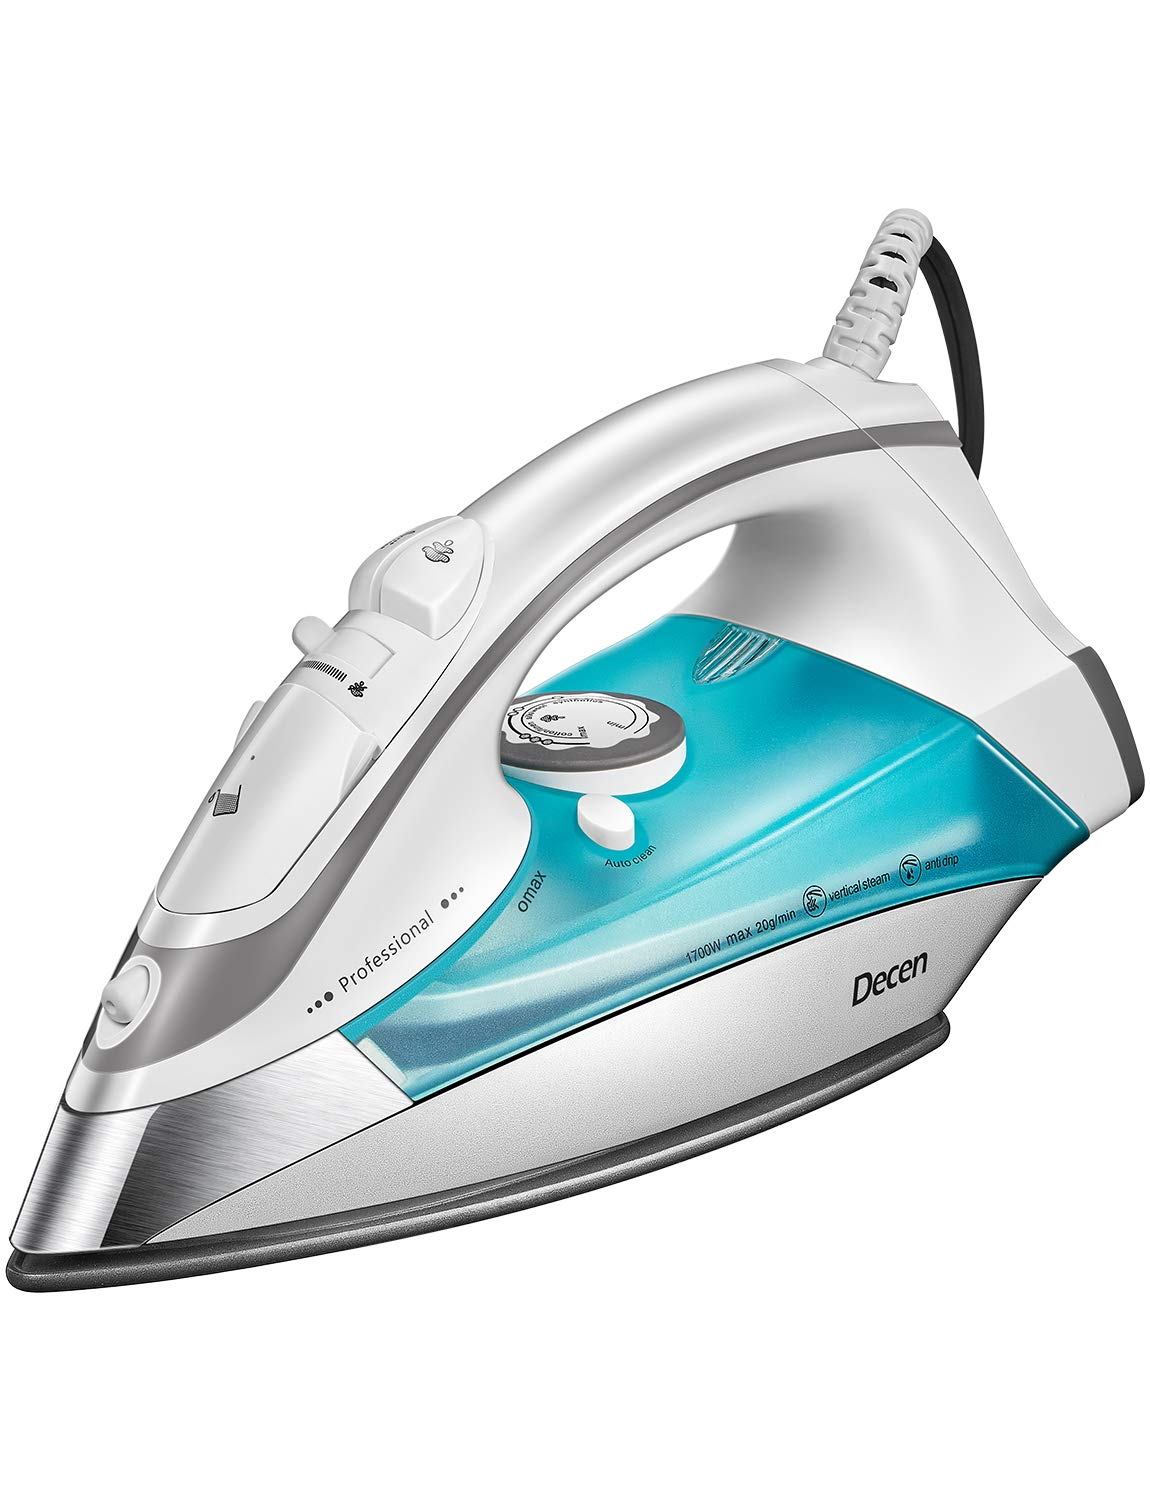 DECEN Steam Iron, 1700W Iron with Large Anti-Drip Nonstick Soleplate, Steamer Iron with Steam Control and Auto-Off, Teal